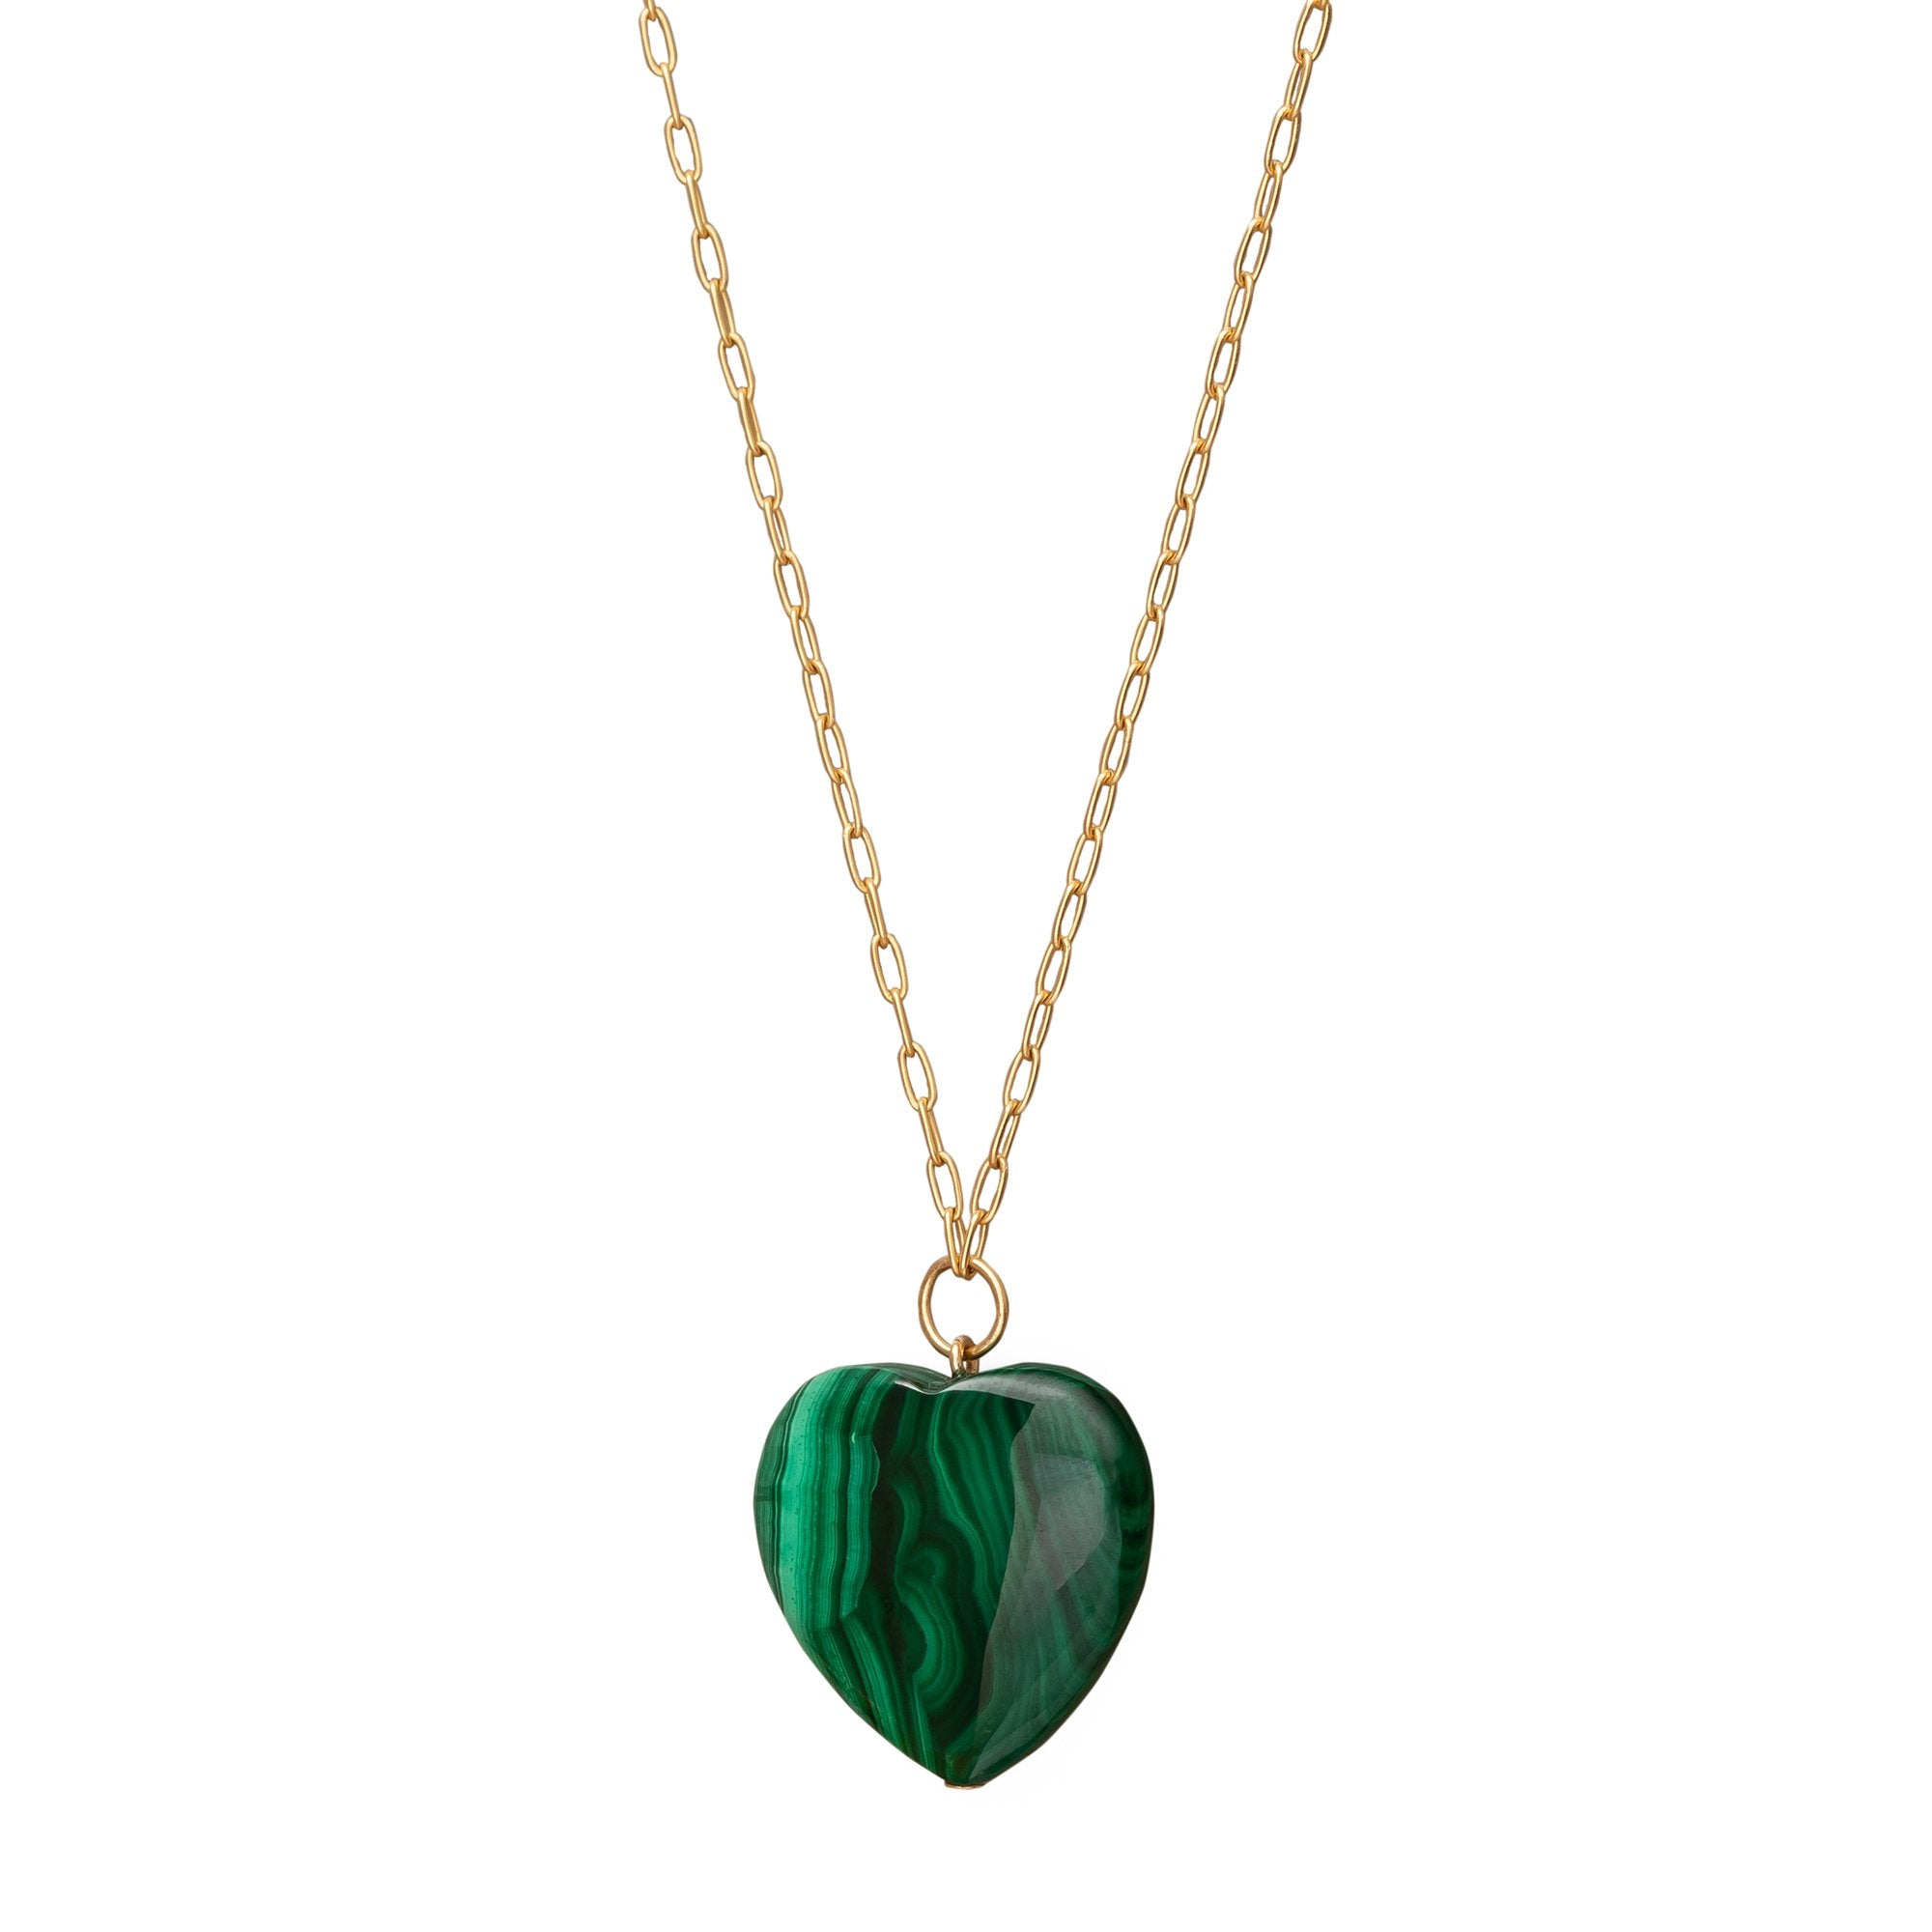 Malachite Heart Necklace - Haute Victoire - Necklaces | Broken English Jewelry